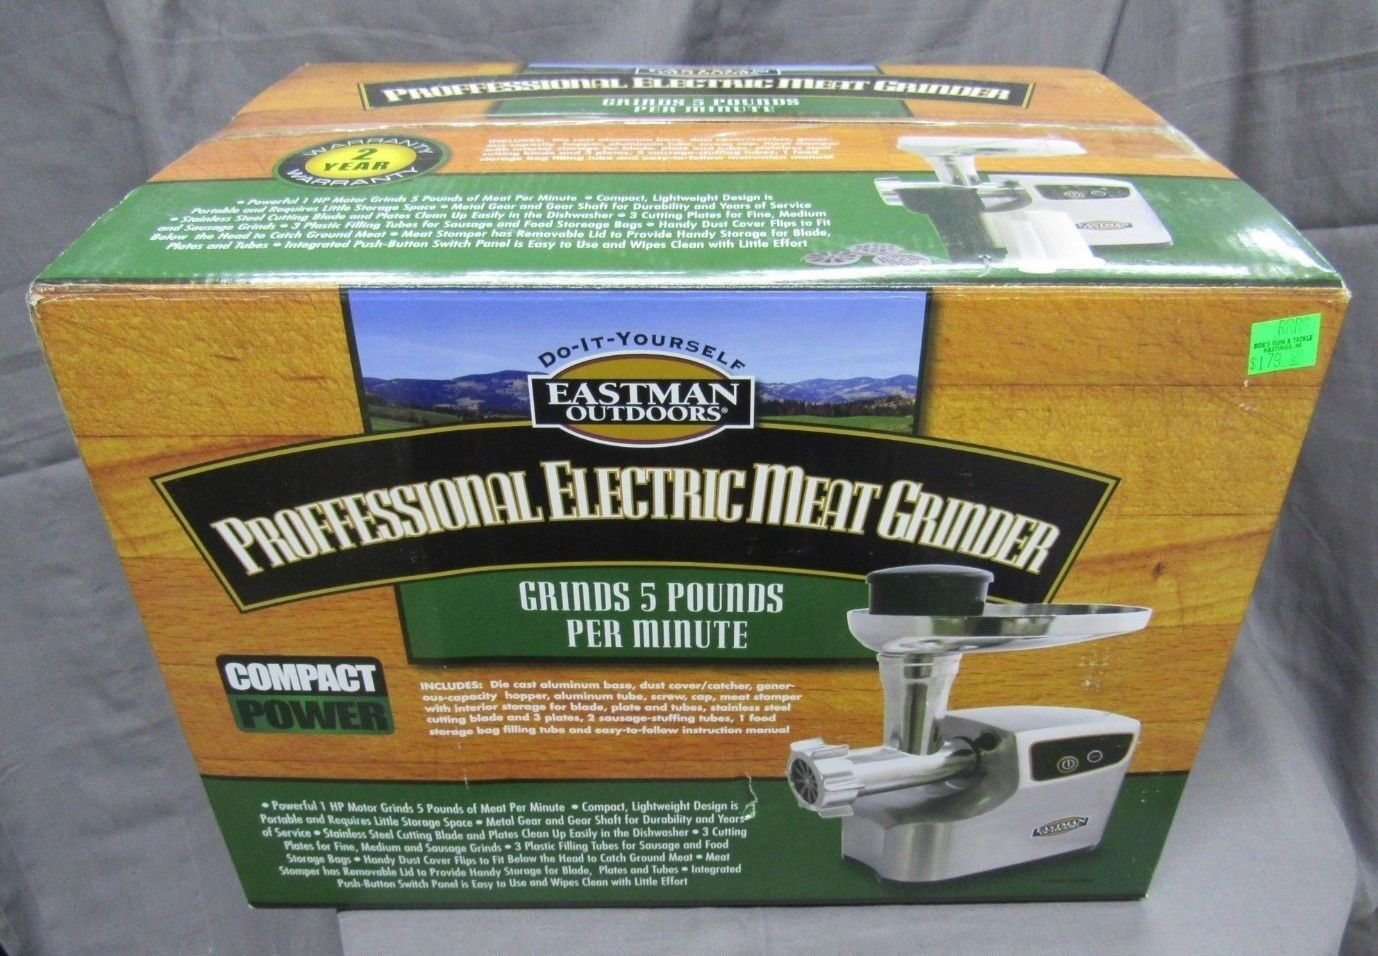 1hp professional electric meat grinder w 3